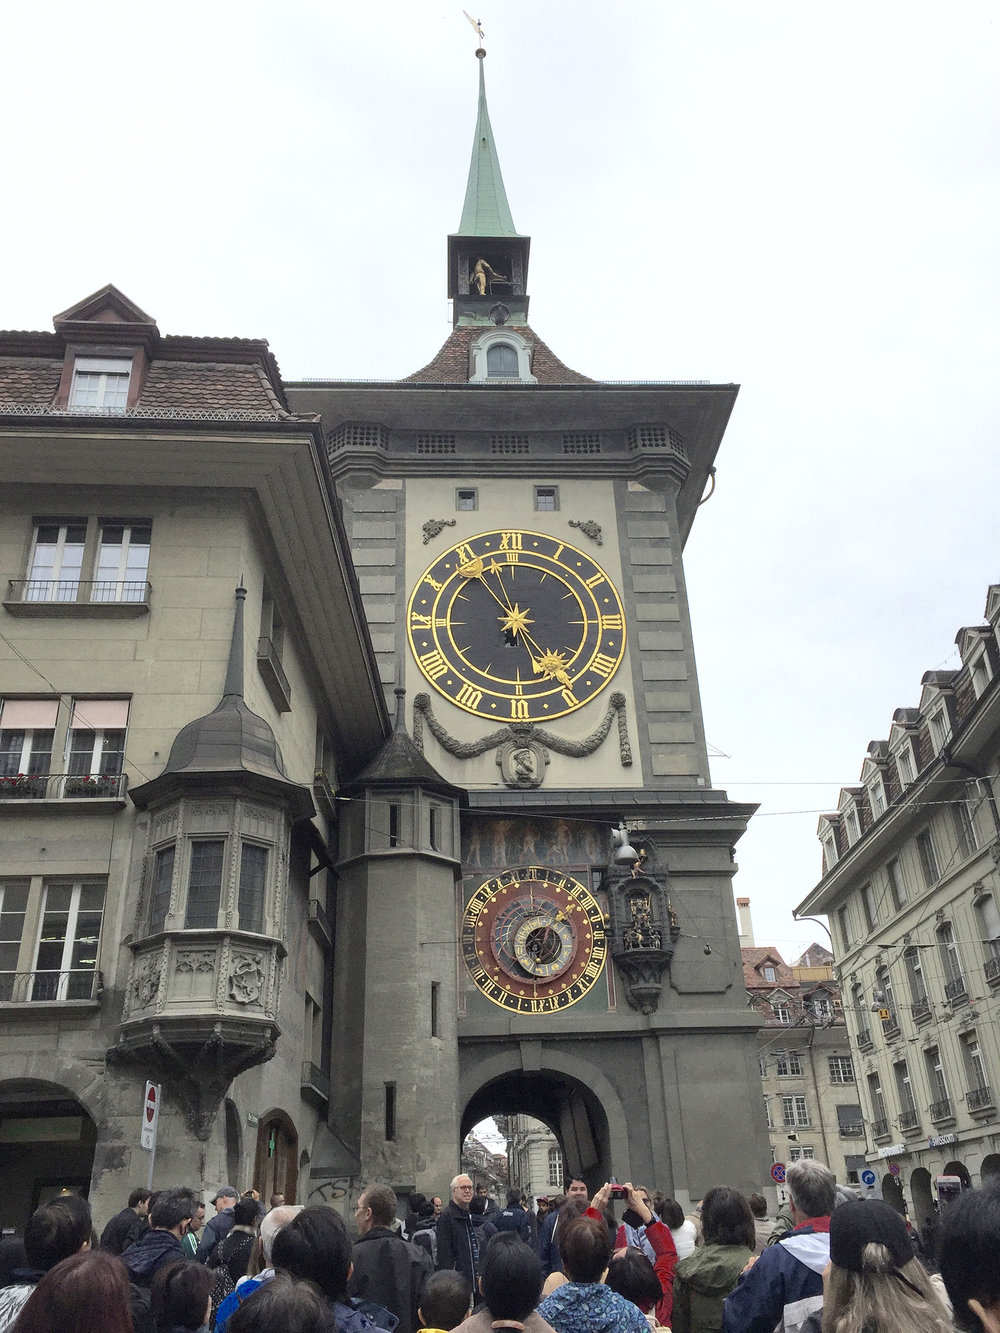 Much like in Hastings County, wonderful daytrip destinations are within driving distance. This is the 500-year-old town clock in Bern.